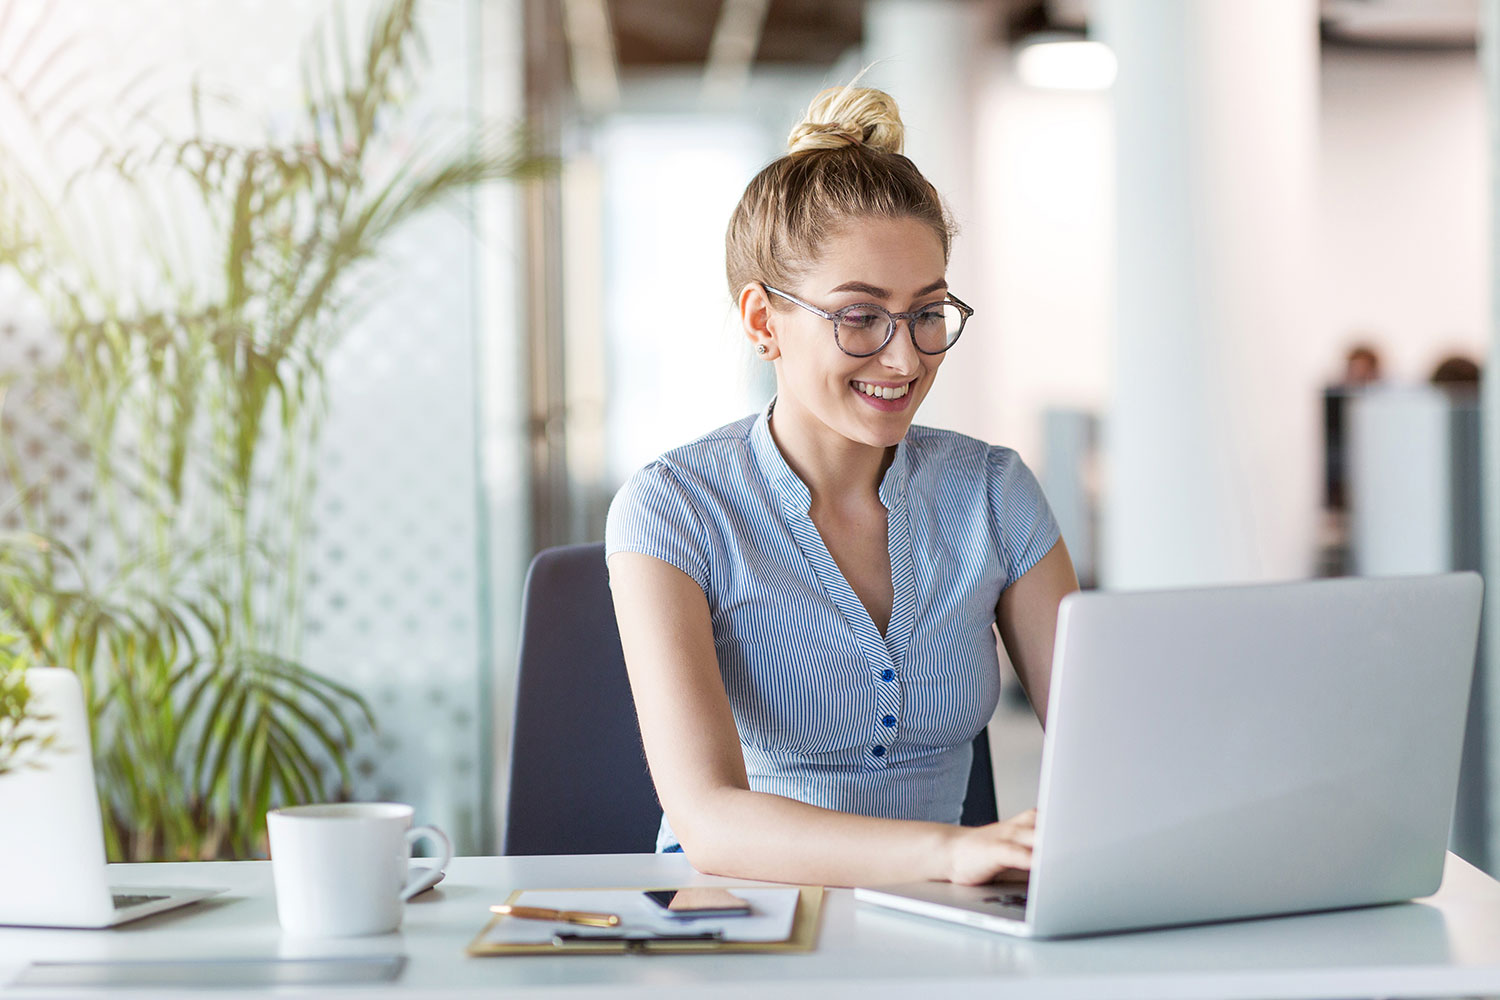 Learning People | Woman professional on laptop